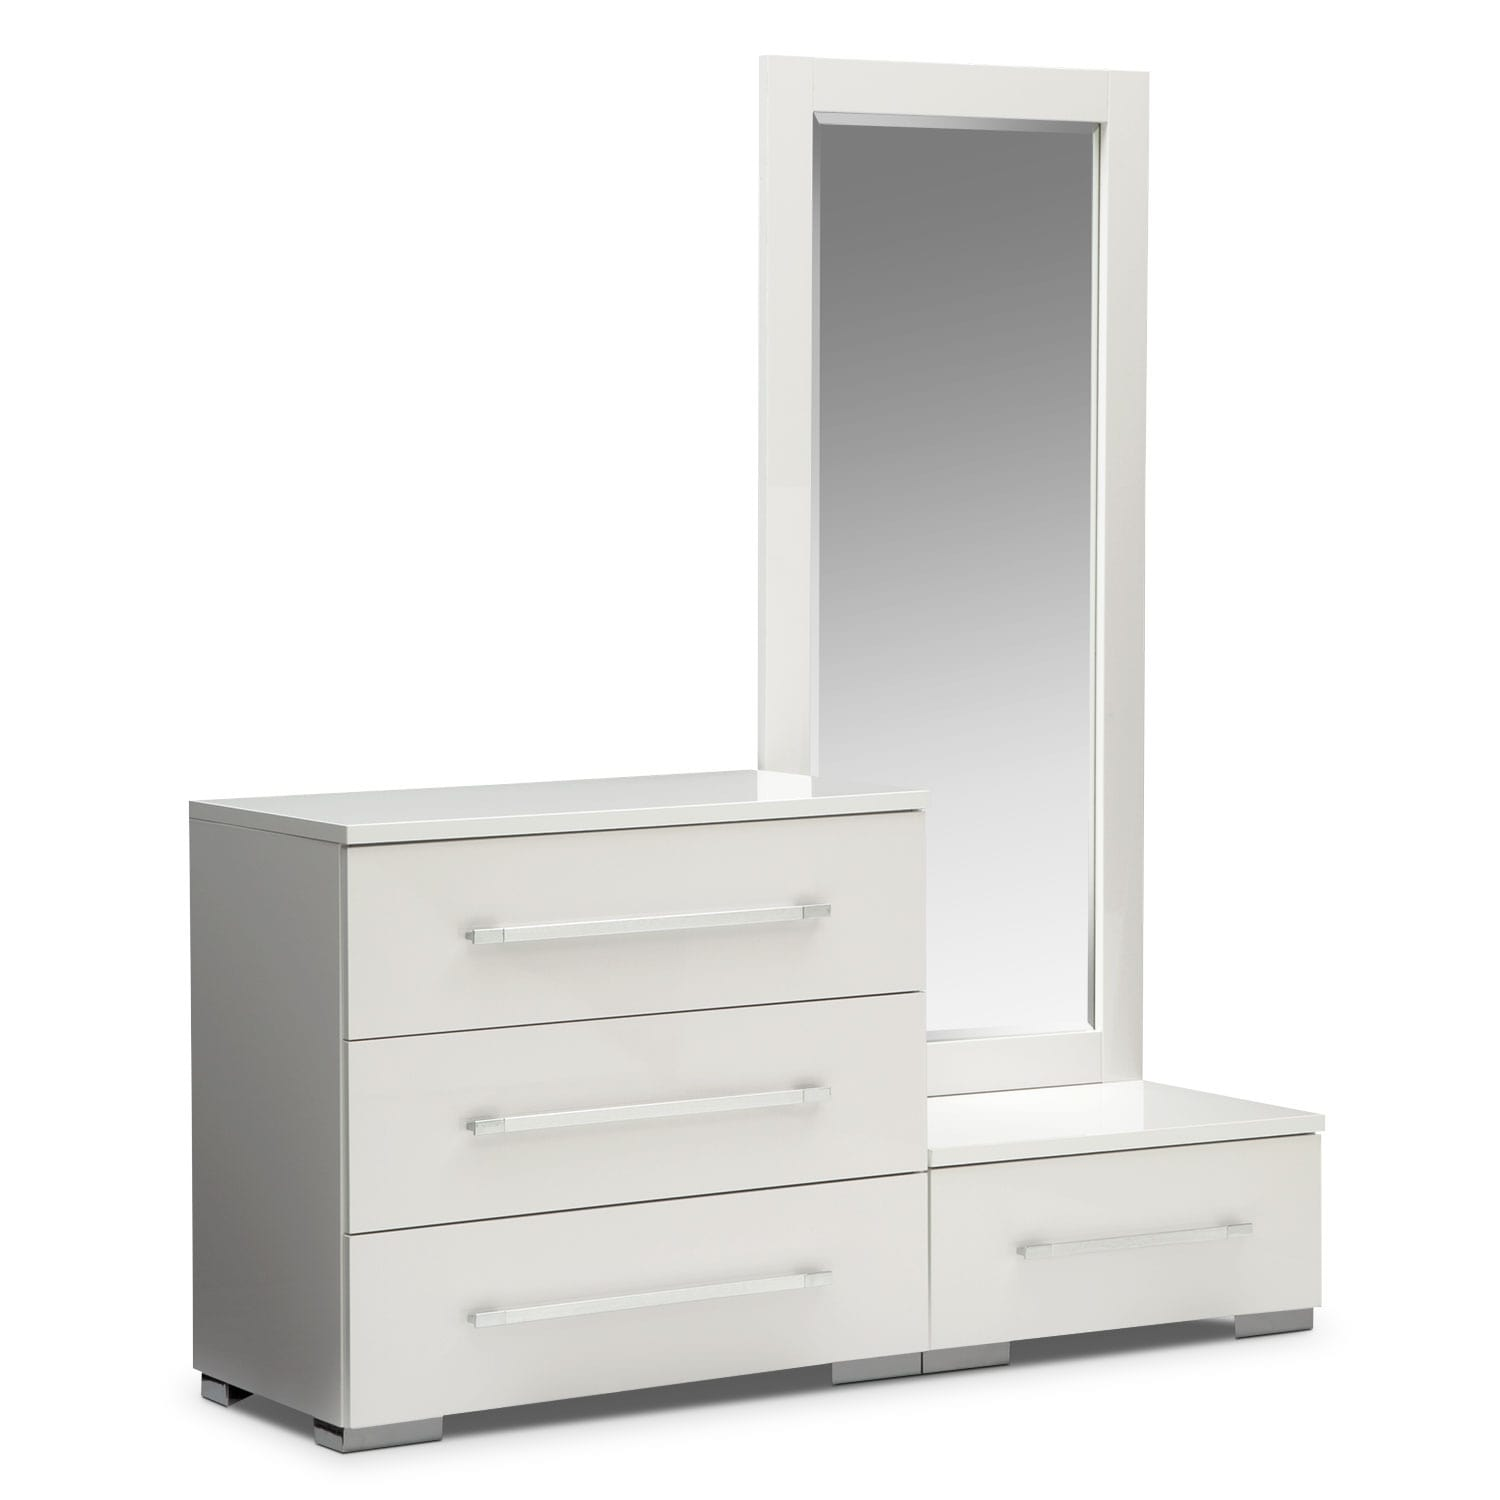 Dimora dressing dresser and dressing mirror with step for White dresser set bedroom furniture